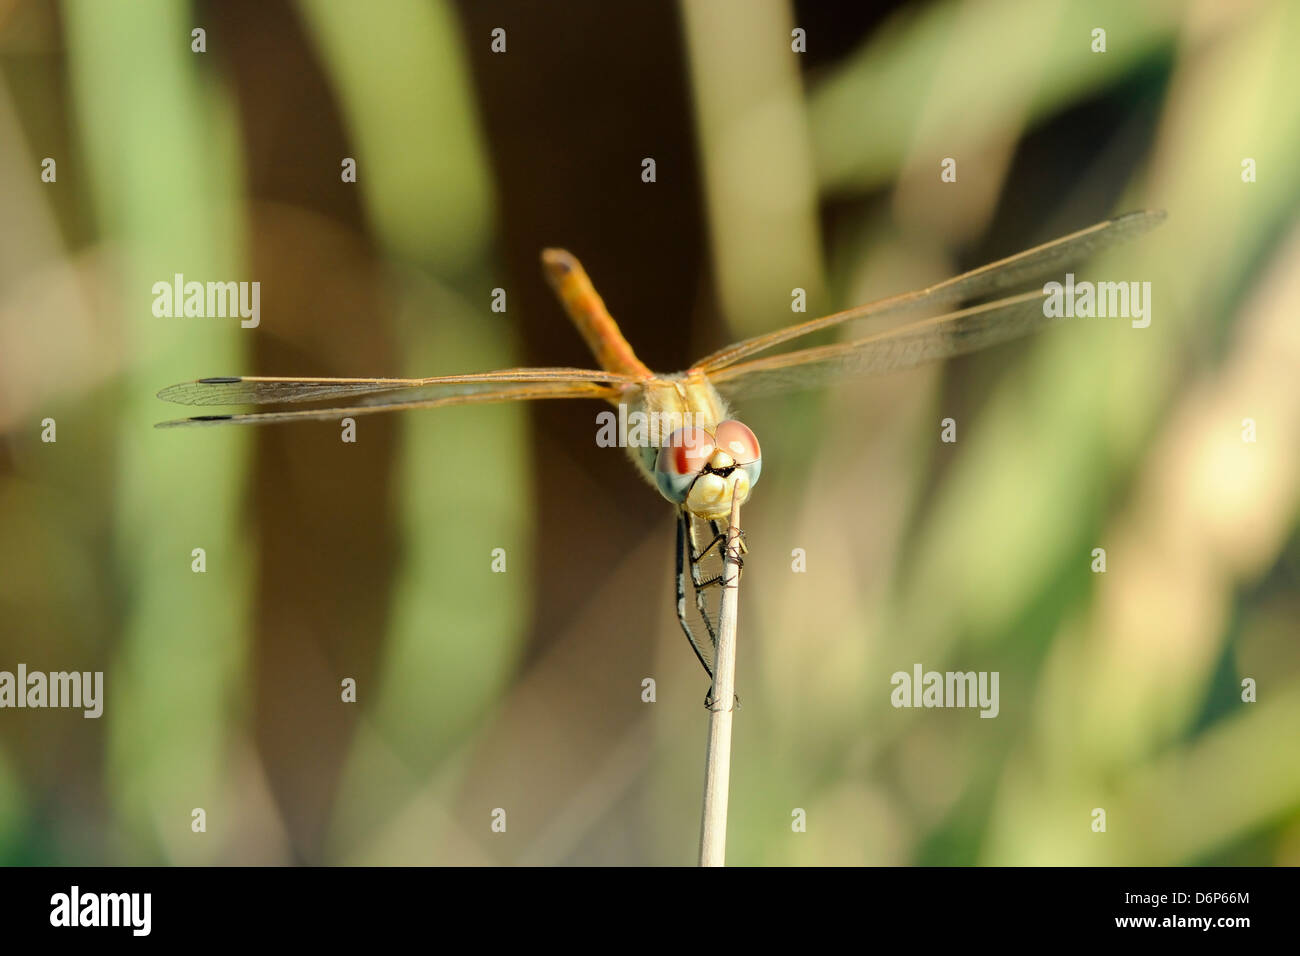 Female red-winged darter dragonfly (Sympetrum fonscolombii) female, clasping spiky stem of Juncus rush, Lesbos (Lesvos), - Stock Image